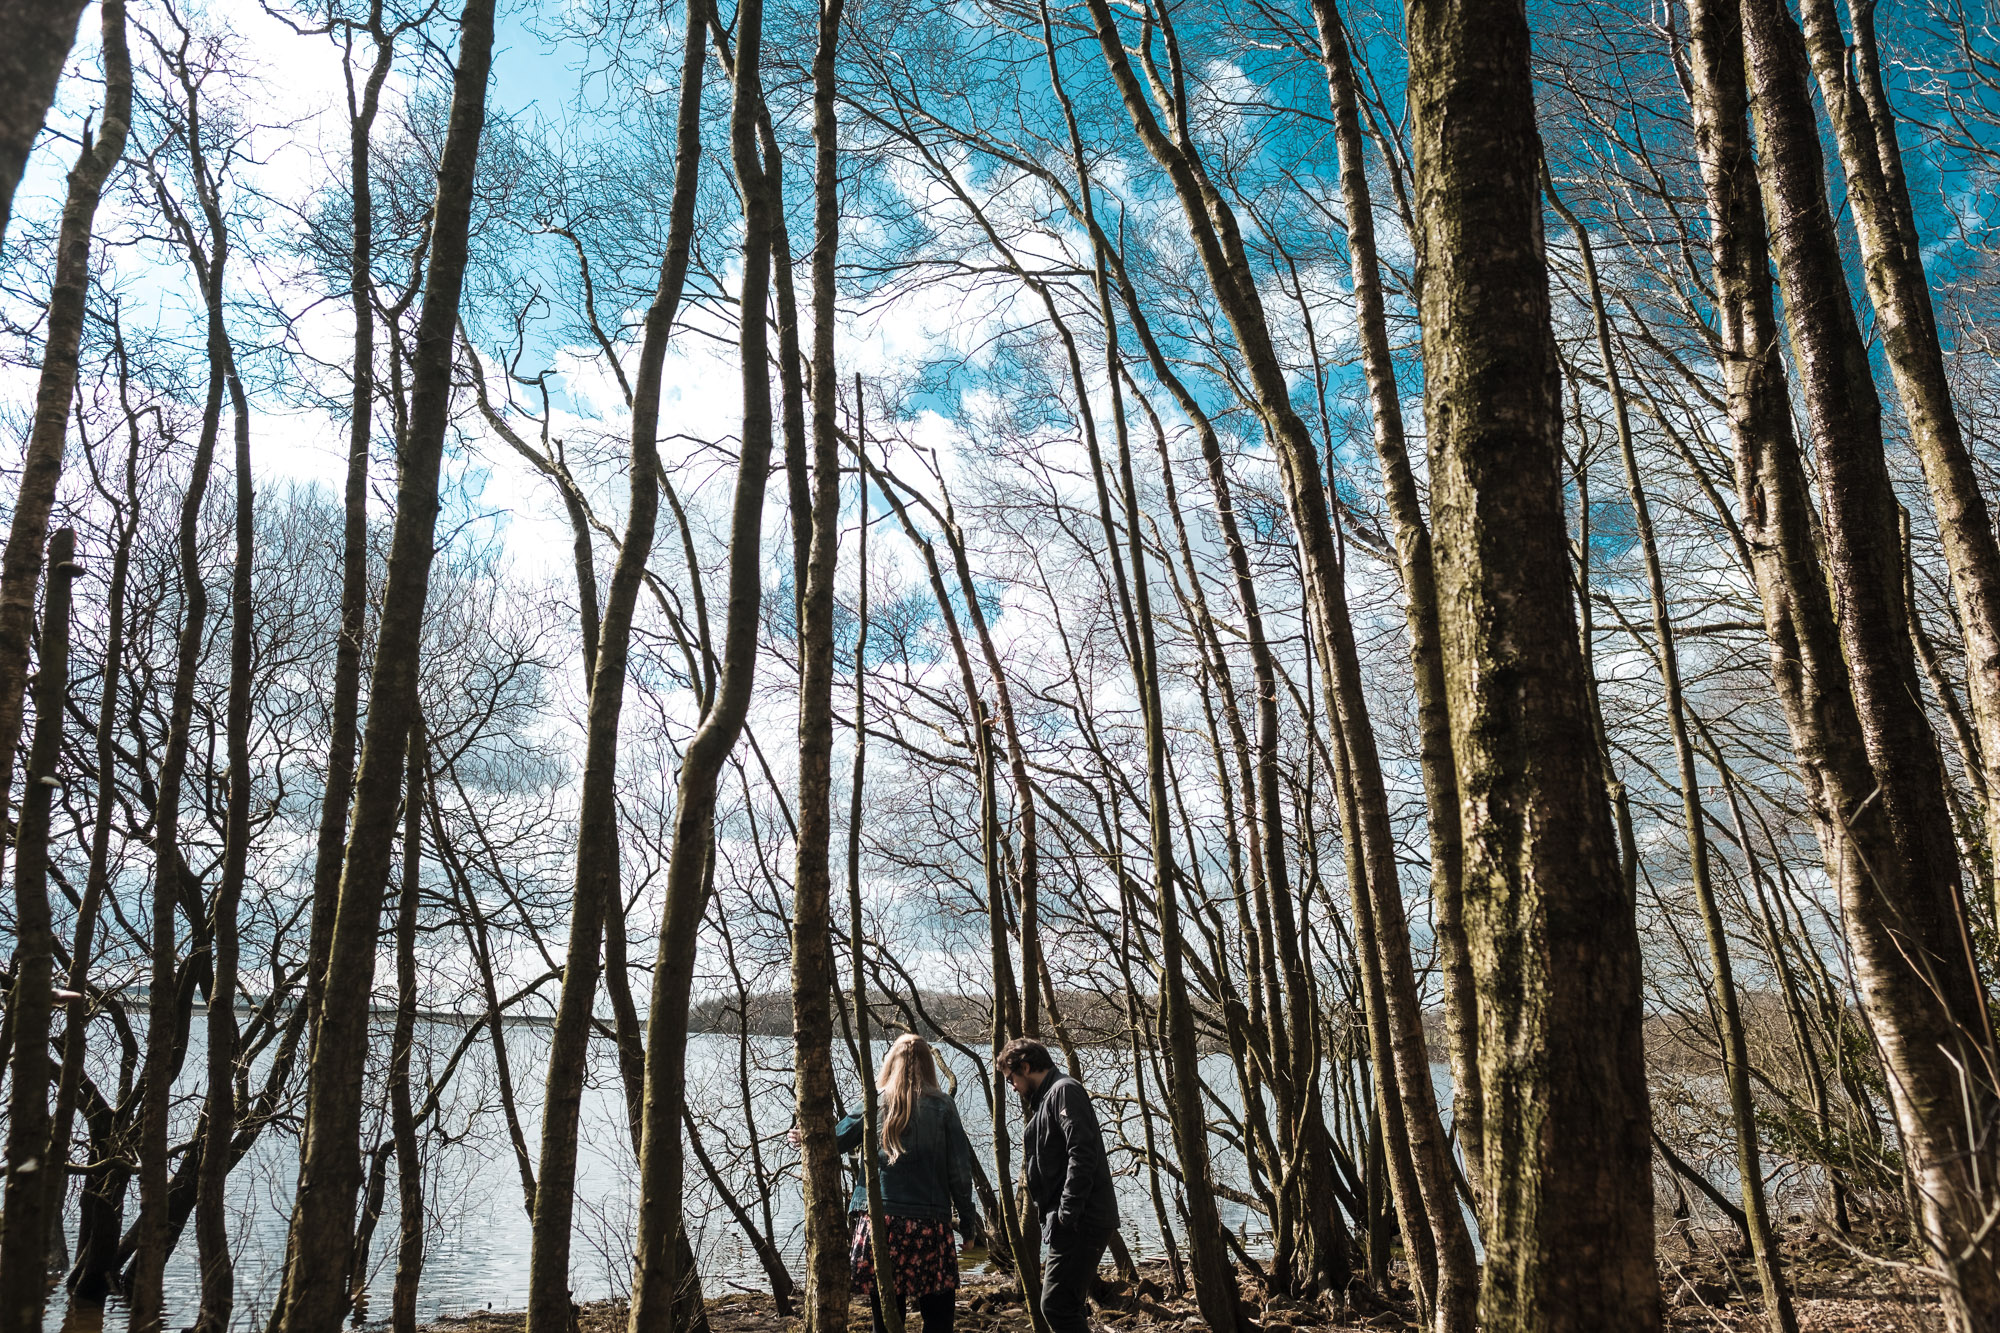 couple walking in between trees with blue sky and clouds